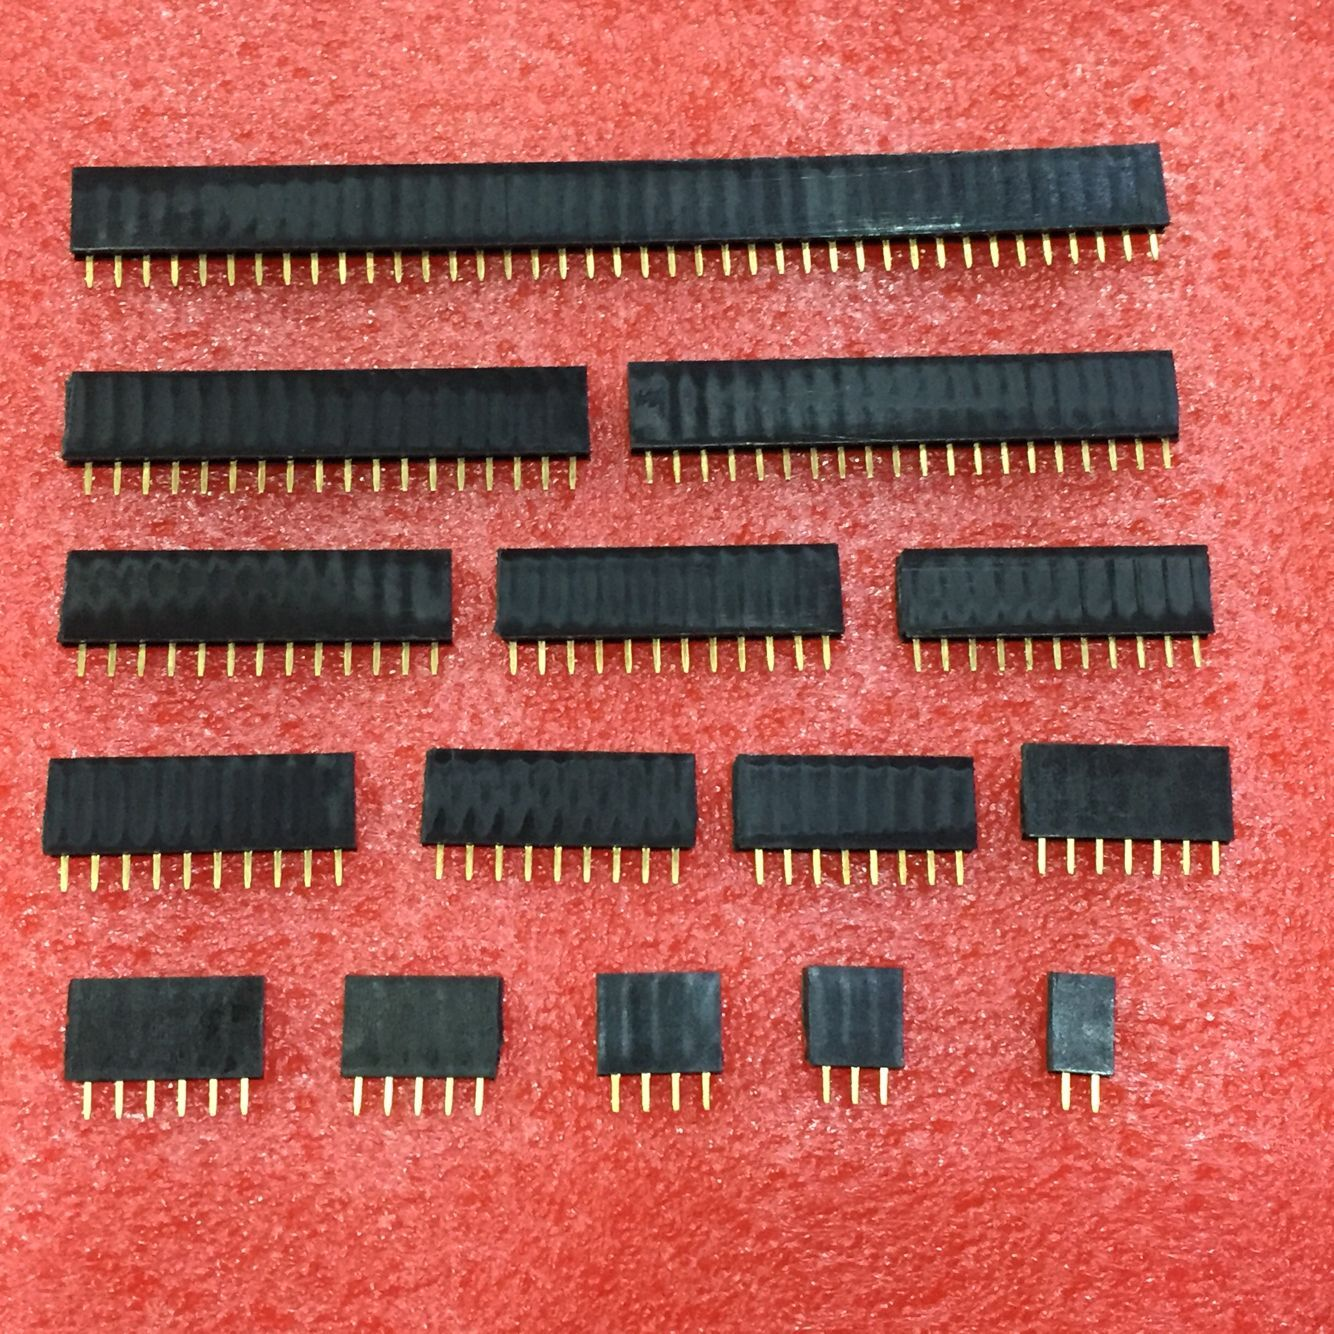 Pitch 2.54mm 2/3/4/5/6/8/9/10/12/14/15/16/20/40 Pin Stright Female Single Row Pin Header Strip PCB Connector Free Shipping 50pcs